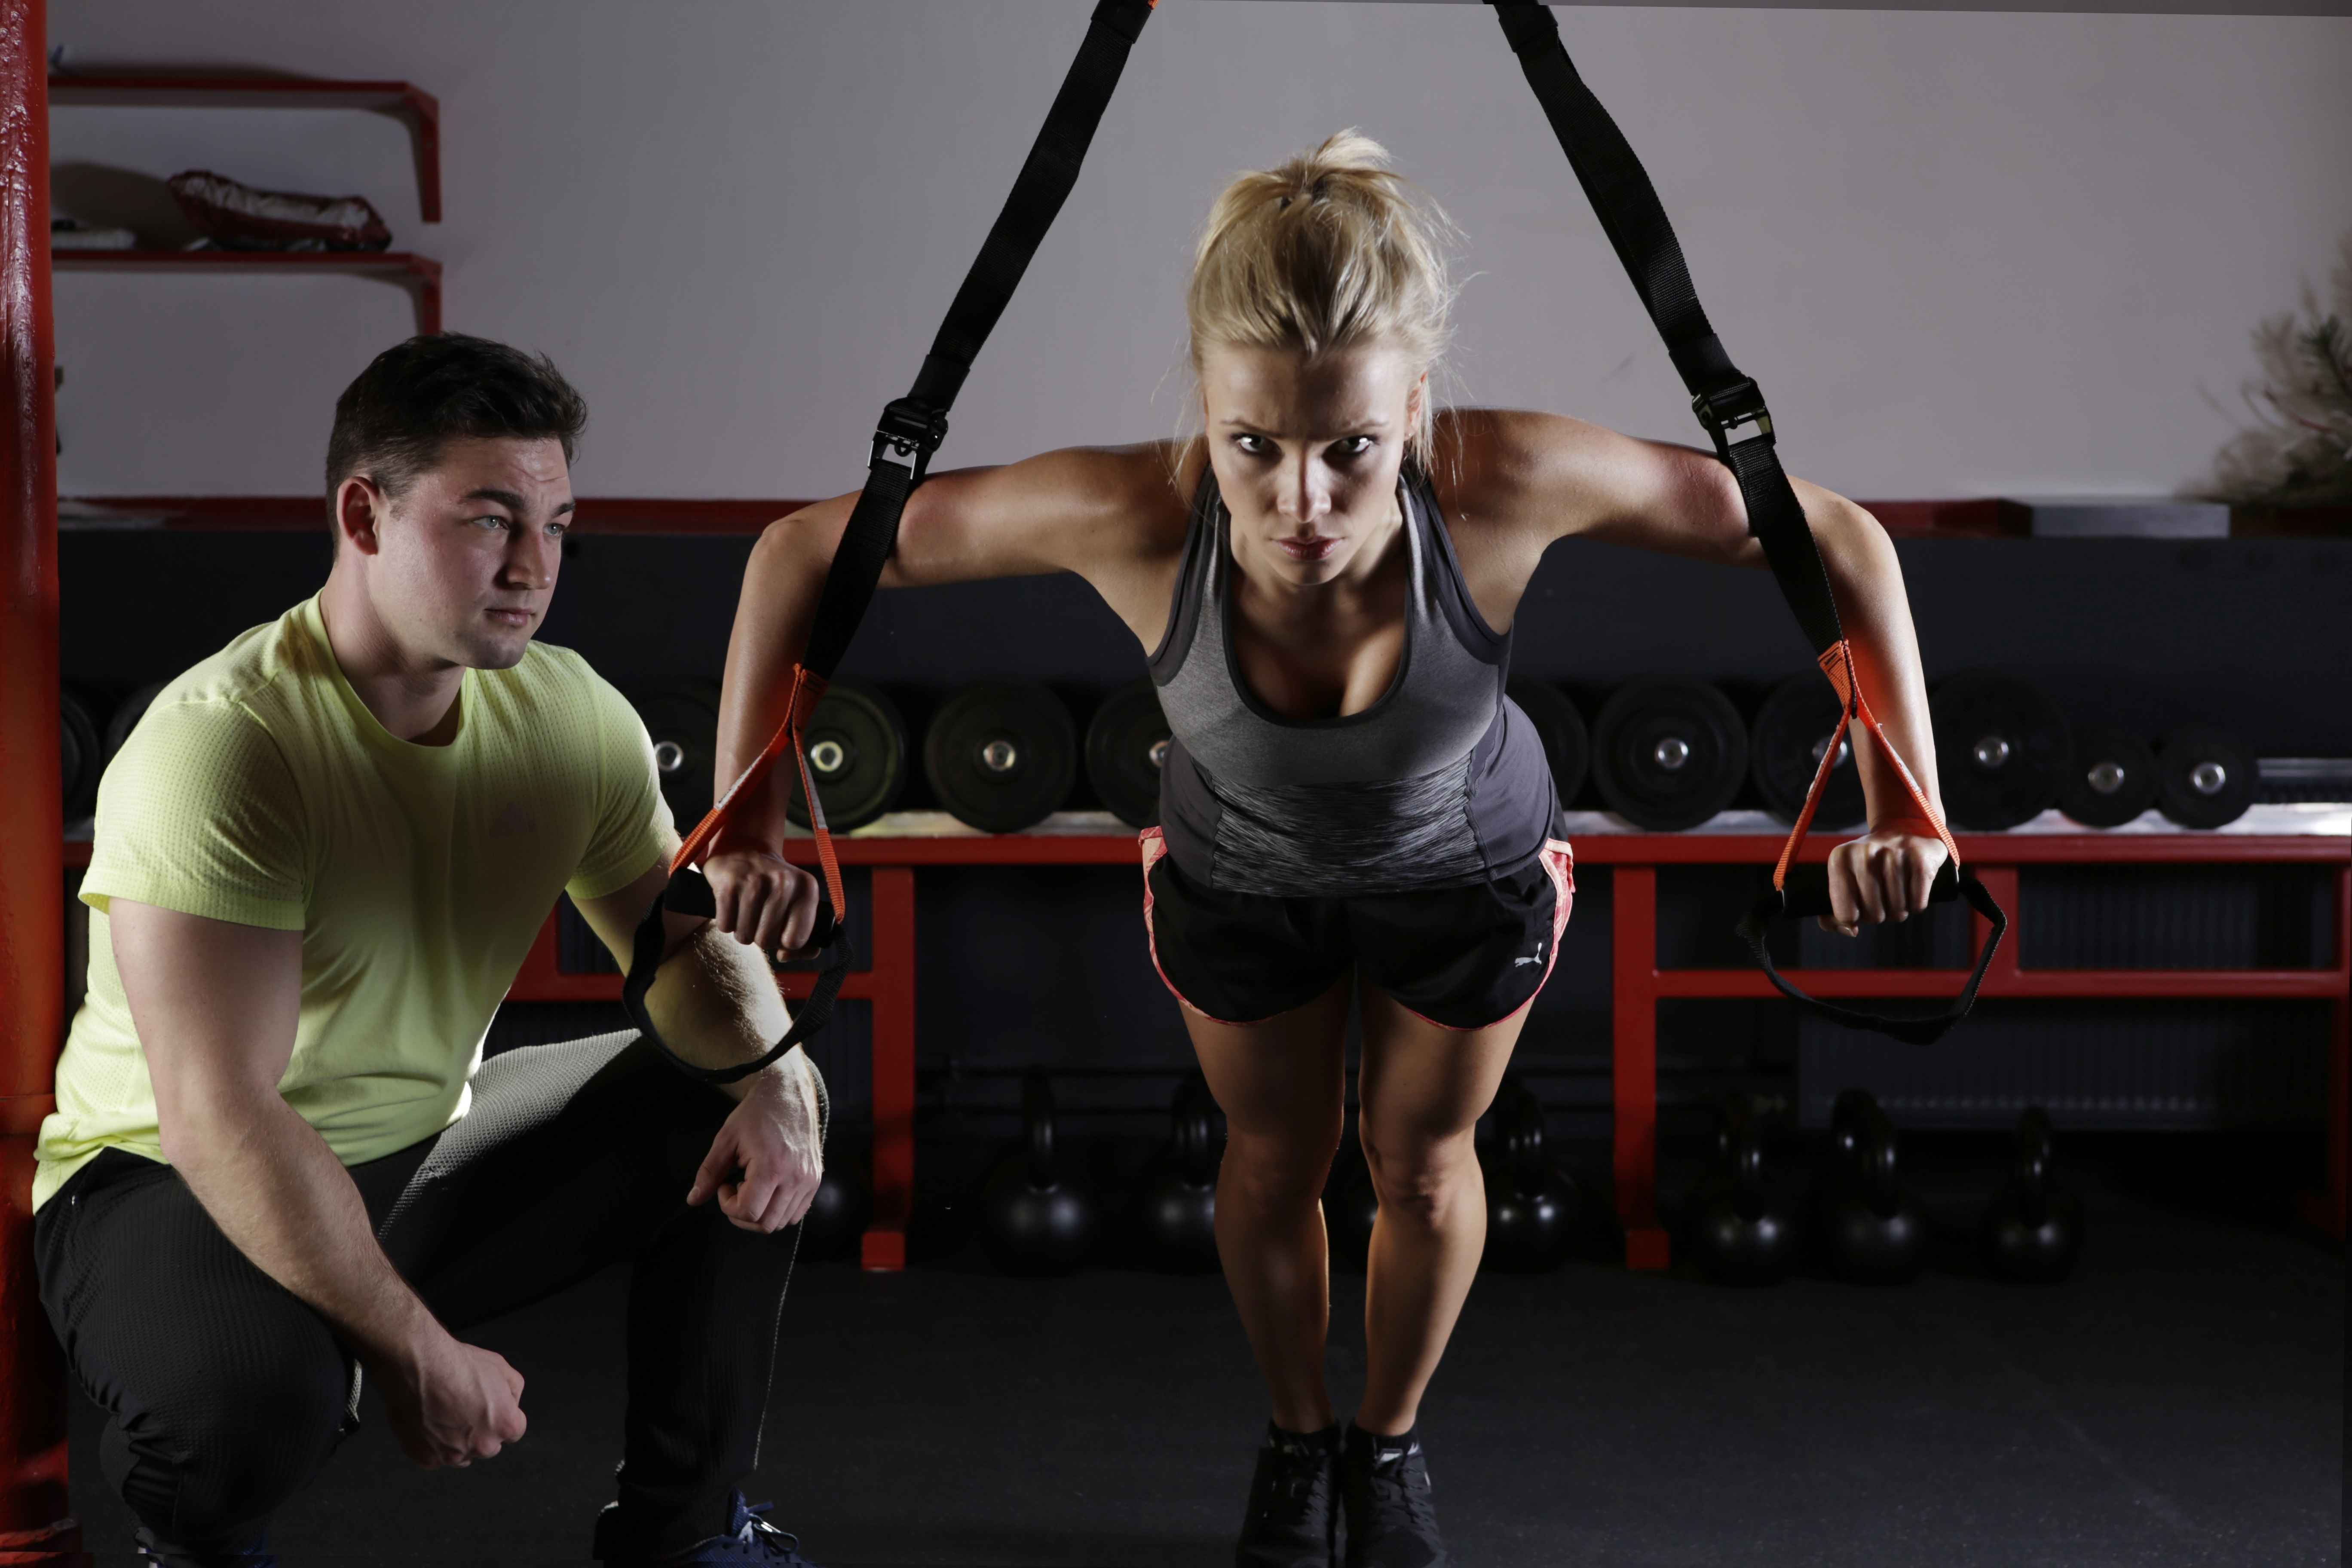 One in four suffer from 'gymtimidation'